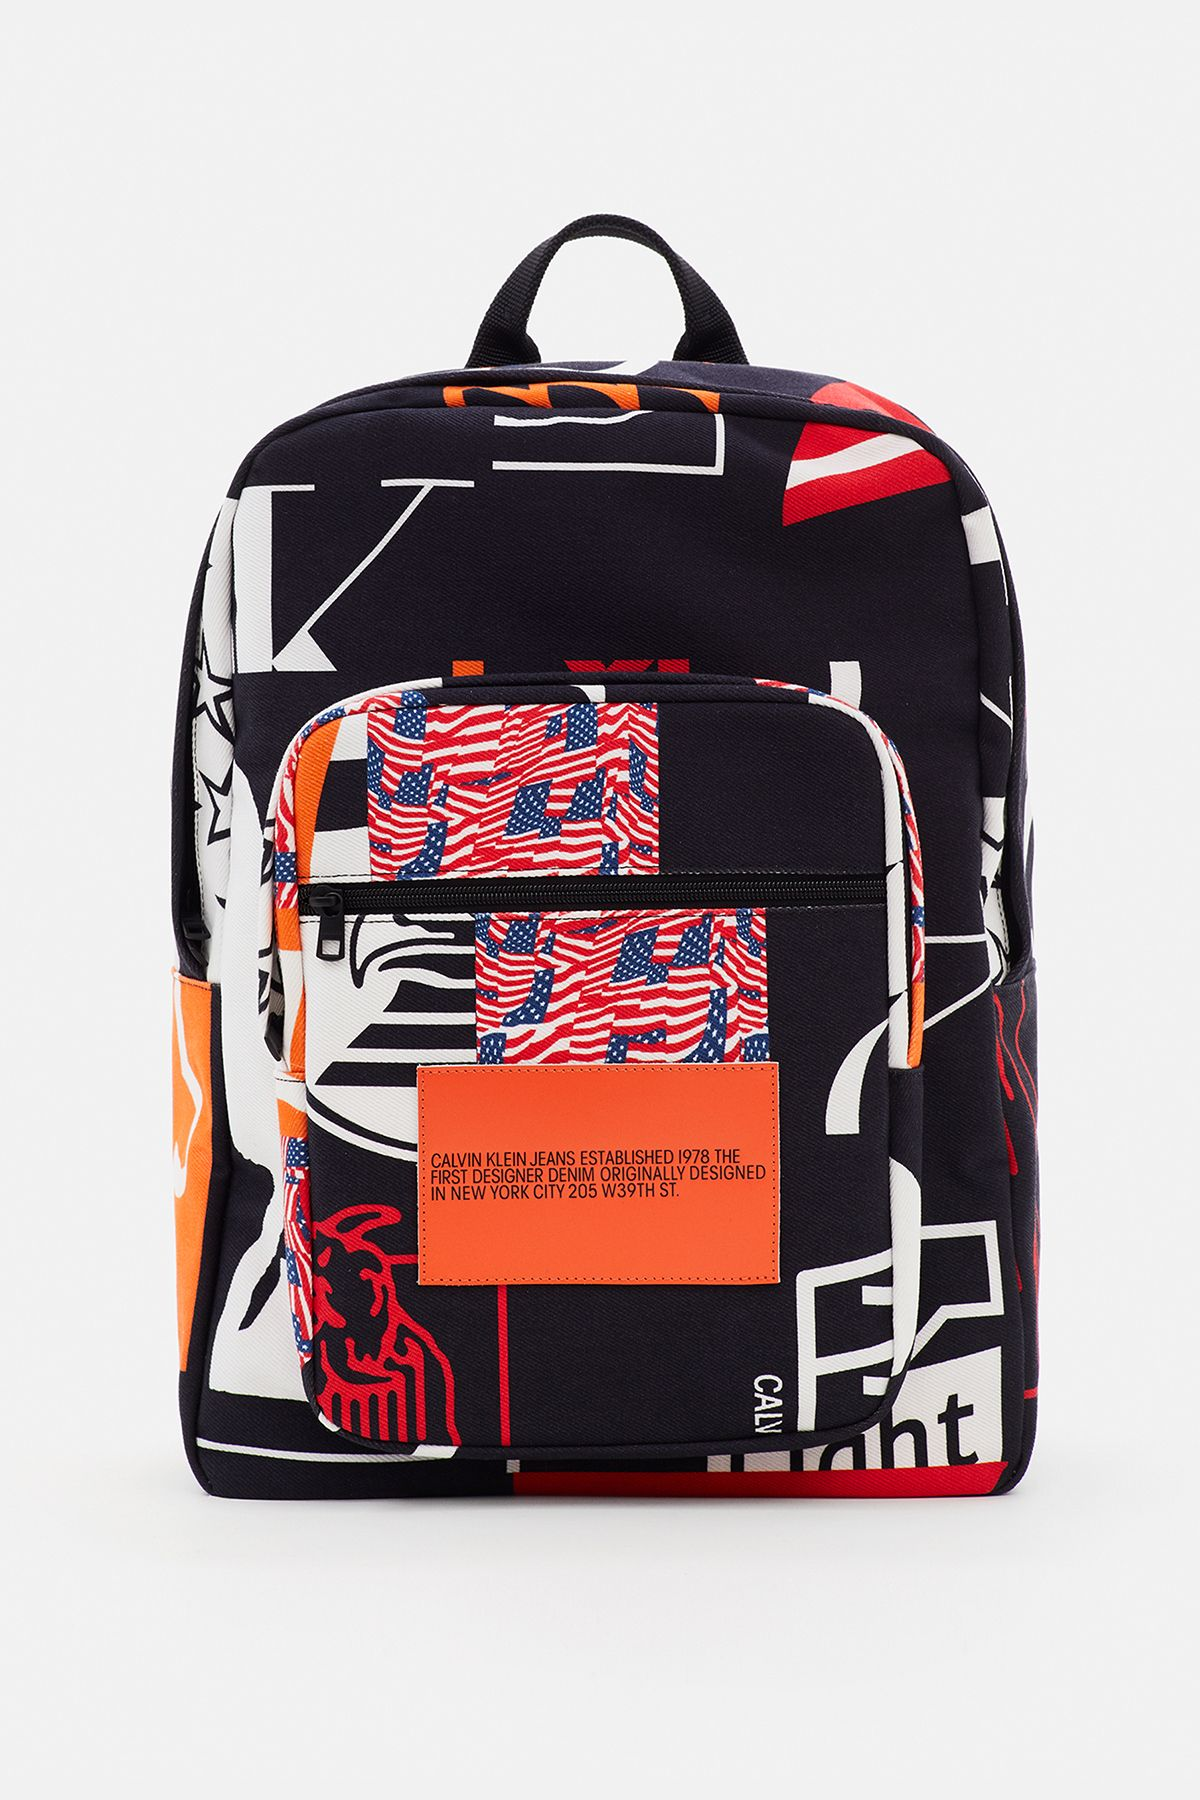 44365e1f5 Get packing: bold backpacks from #CALVINKLEIN JEANS EST. 1978. #CKEST1978